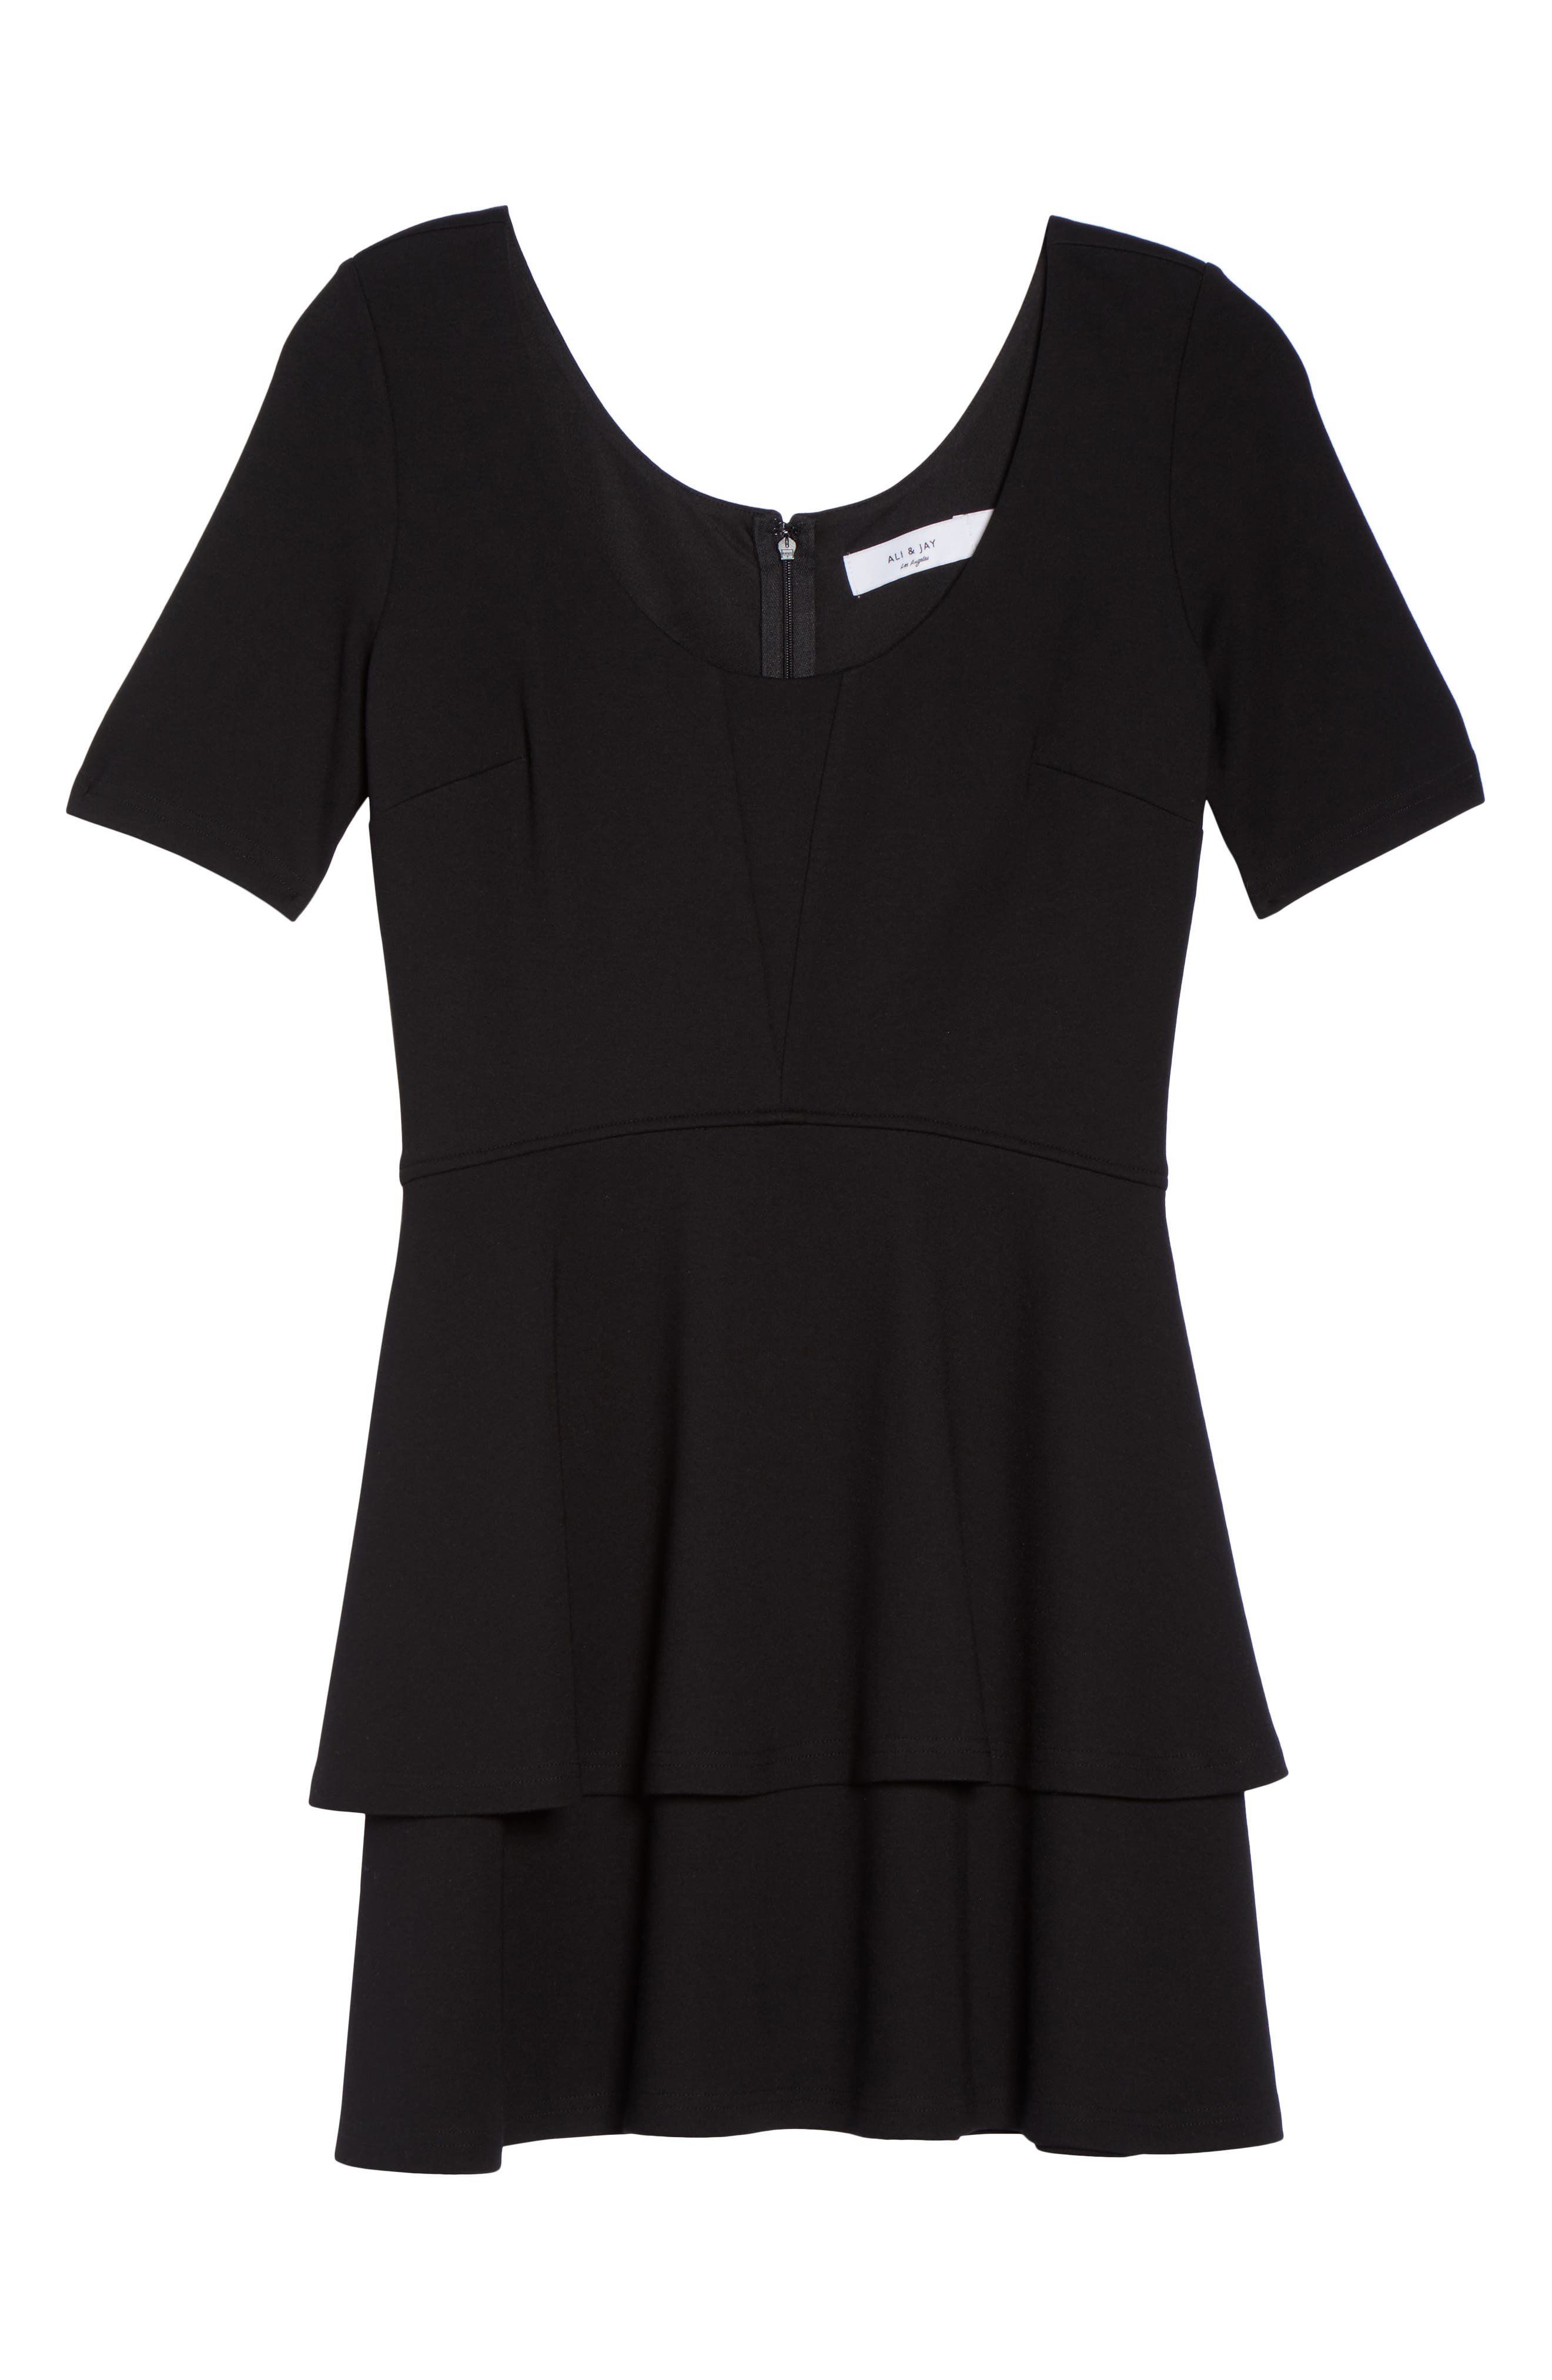 Isn't It Sweet Fit & Flare Dress,                             Alternate thumbnail 7, color,                             Black